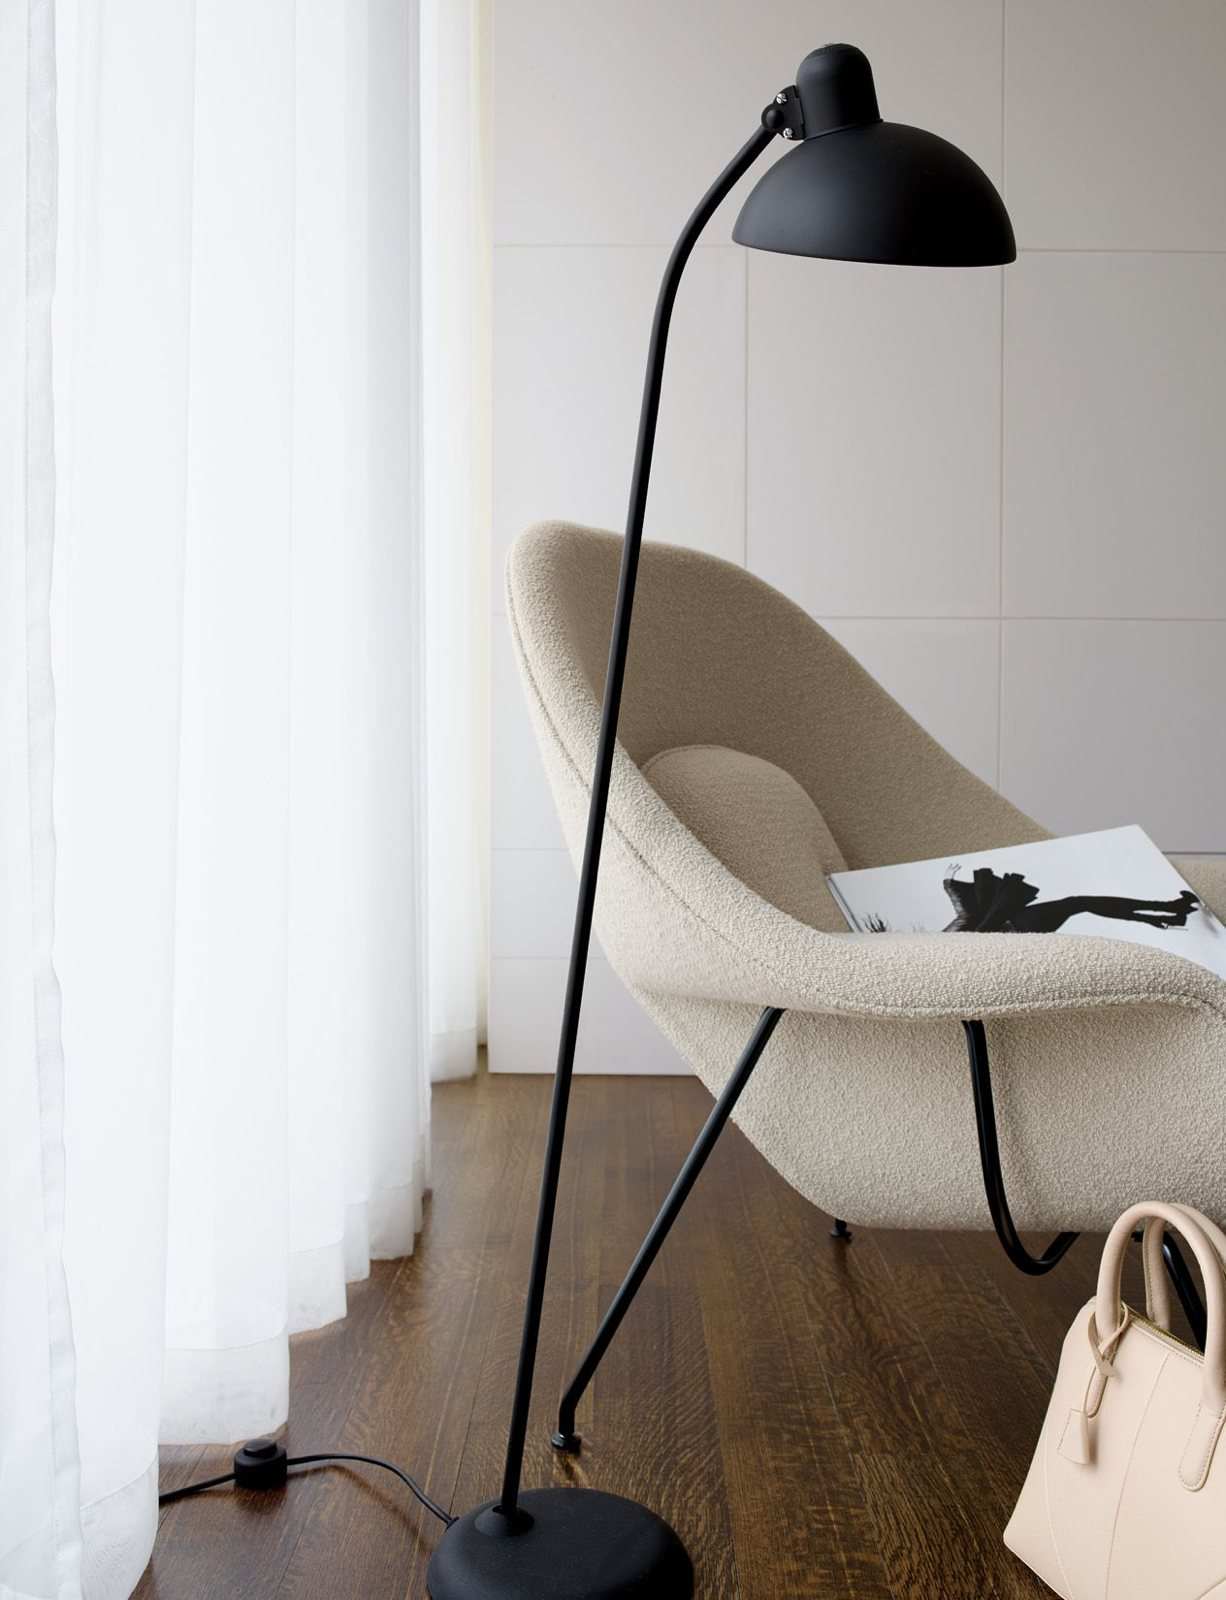 Kaiser Idell 6556 F Tiltable Floor Lamp By Christian Dell